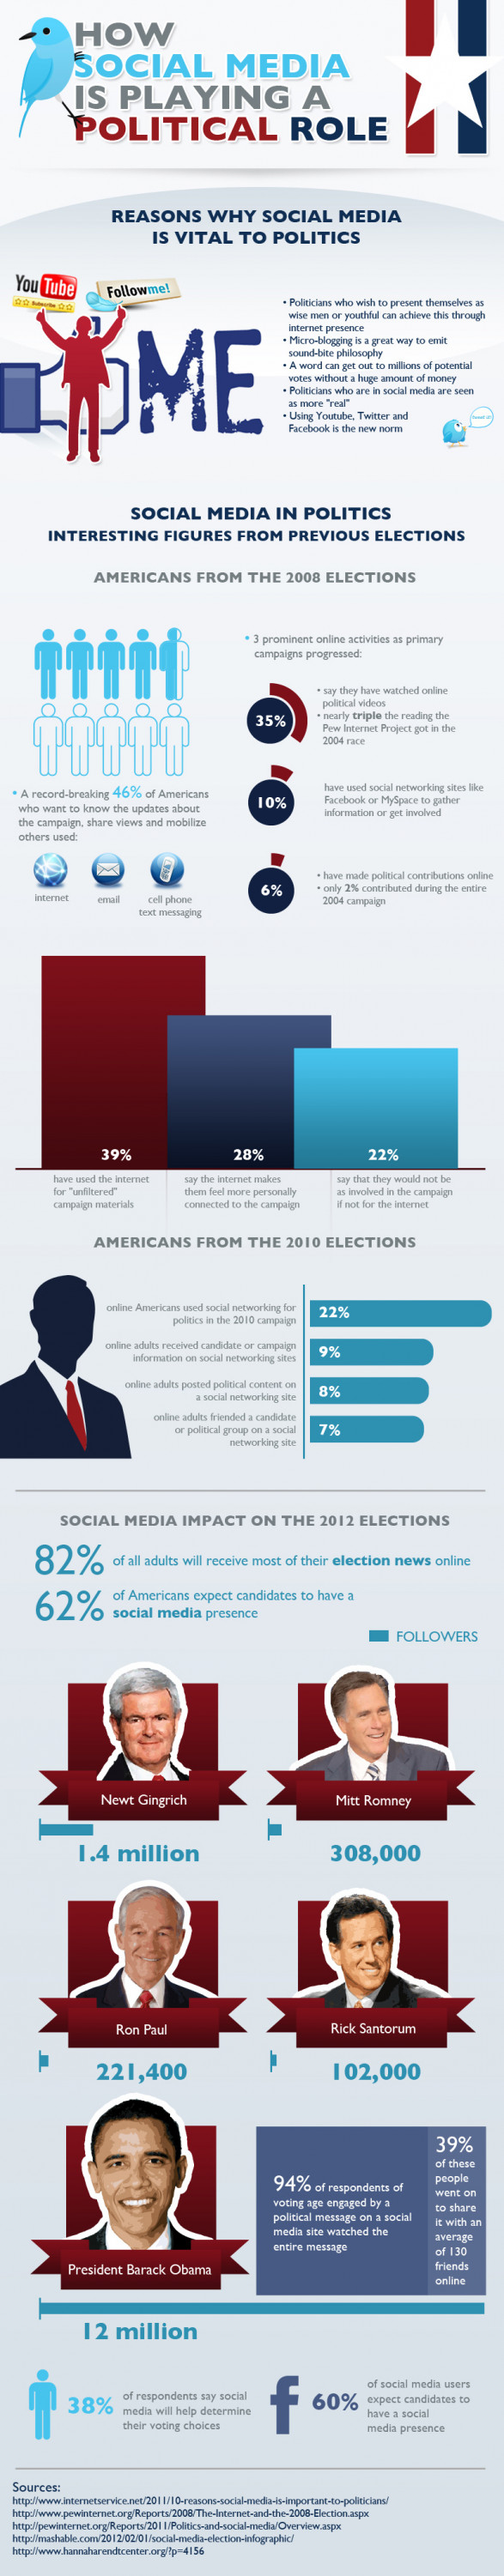 How Social Media is Playing a Political Role